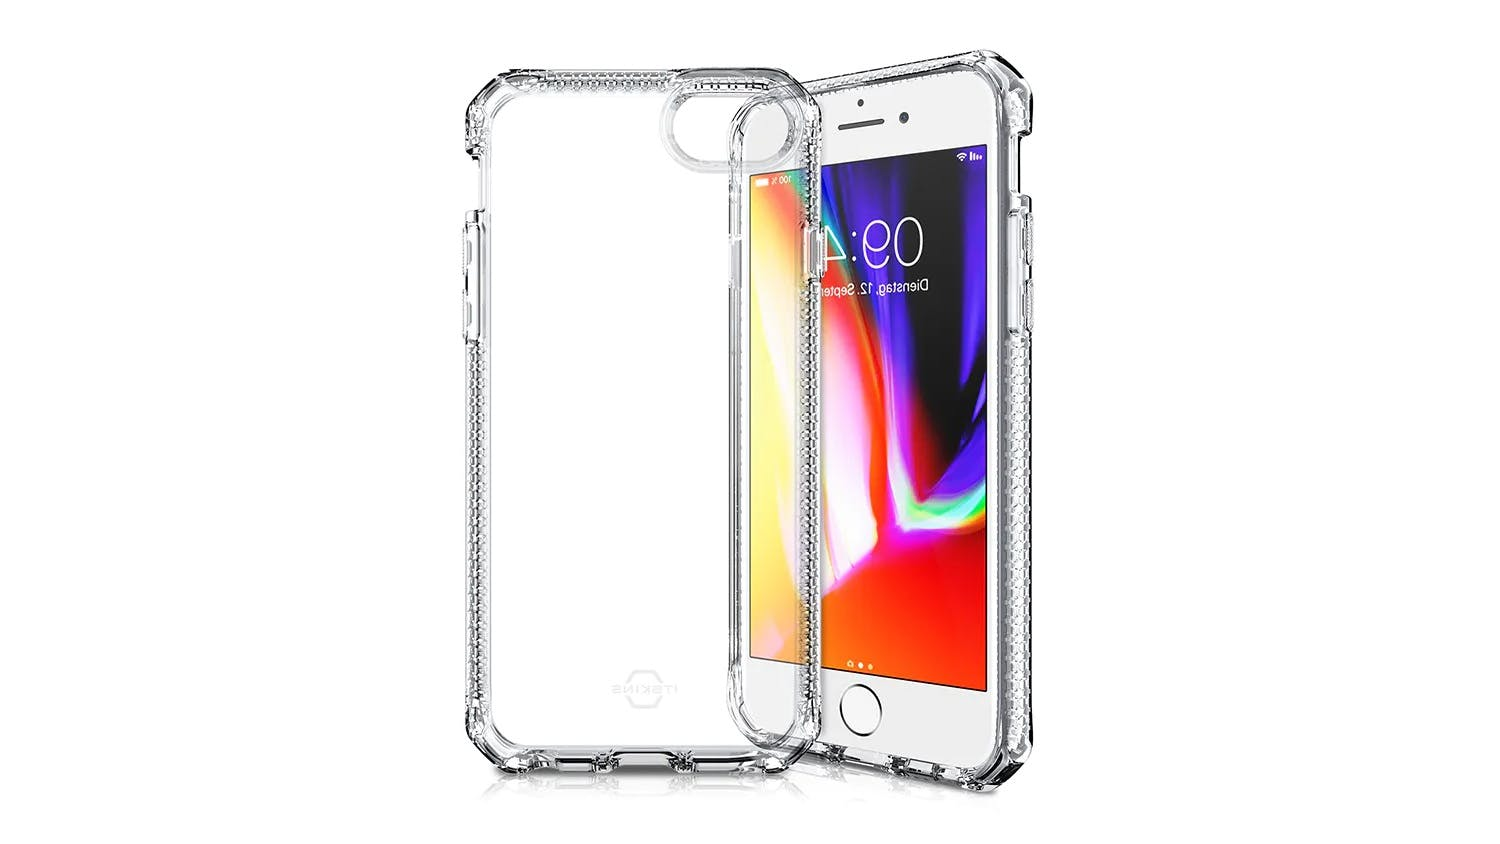 ITSKINS Spectrum Case for iPhone SE (2nd Gen), 7/8 - Clear